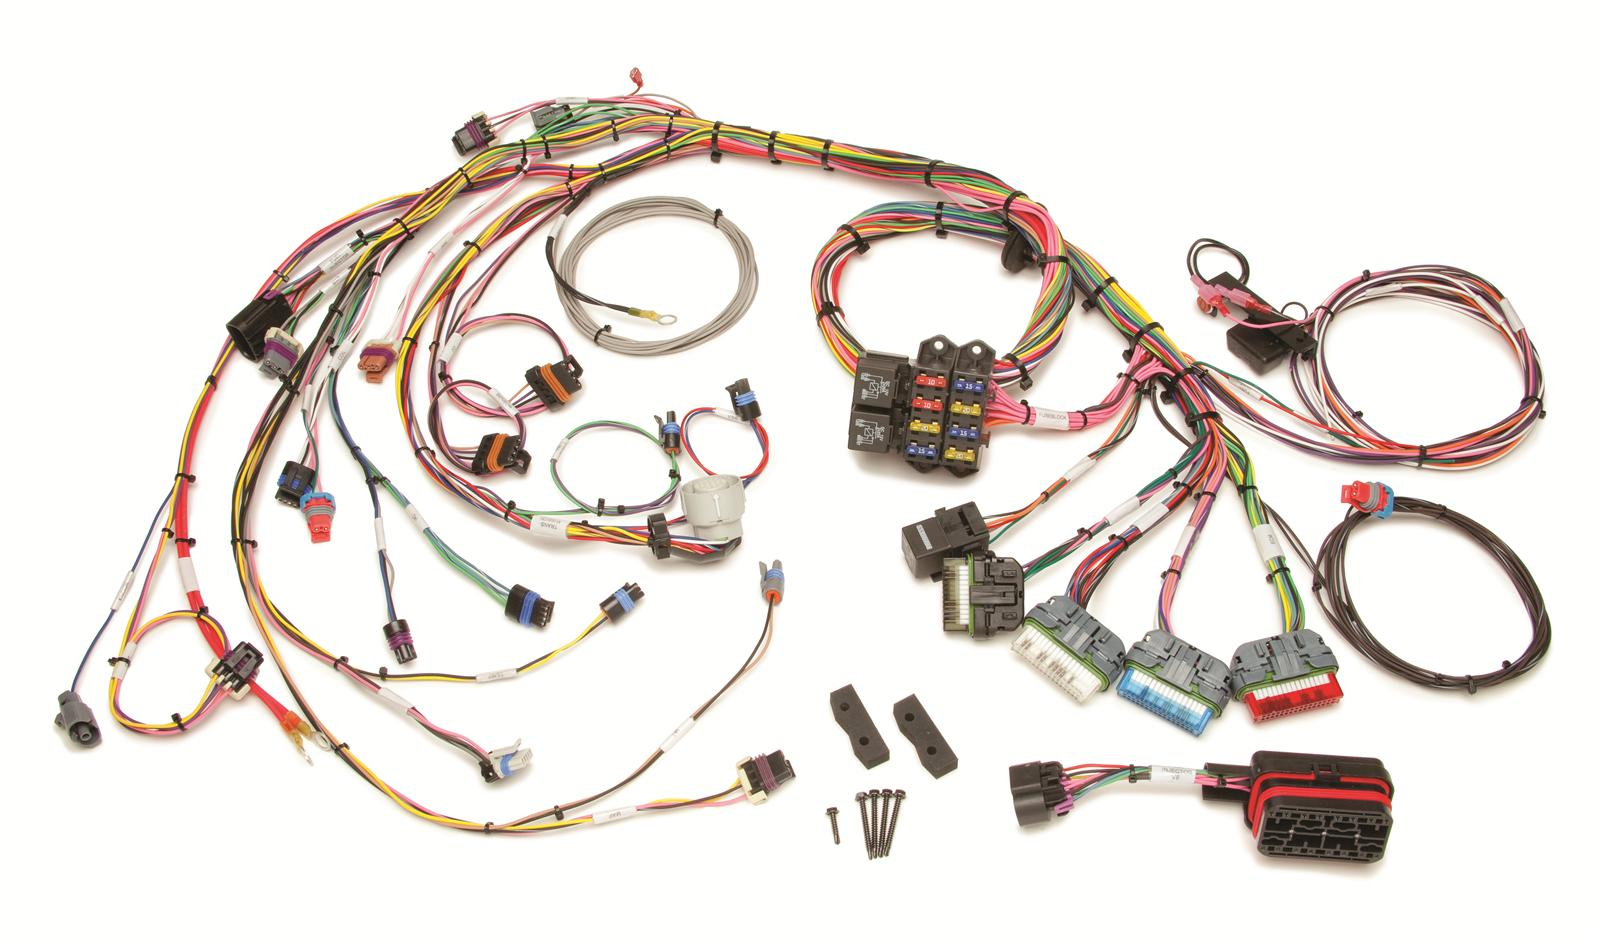 painless wiring installation instructions tropical rainforest food chain diagram wire harness